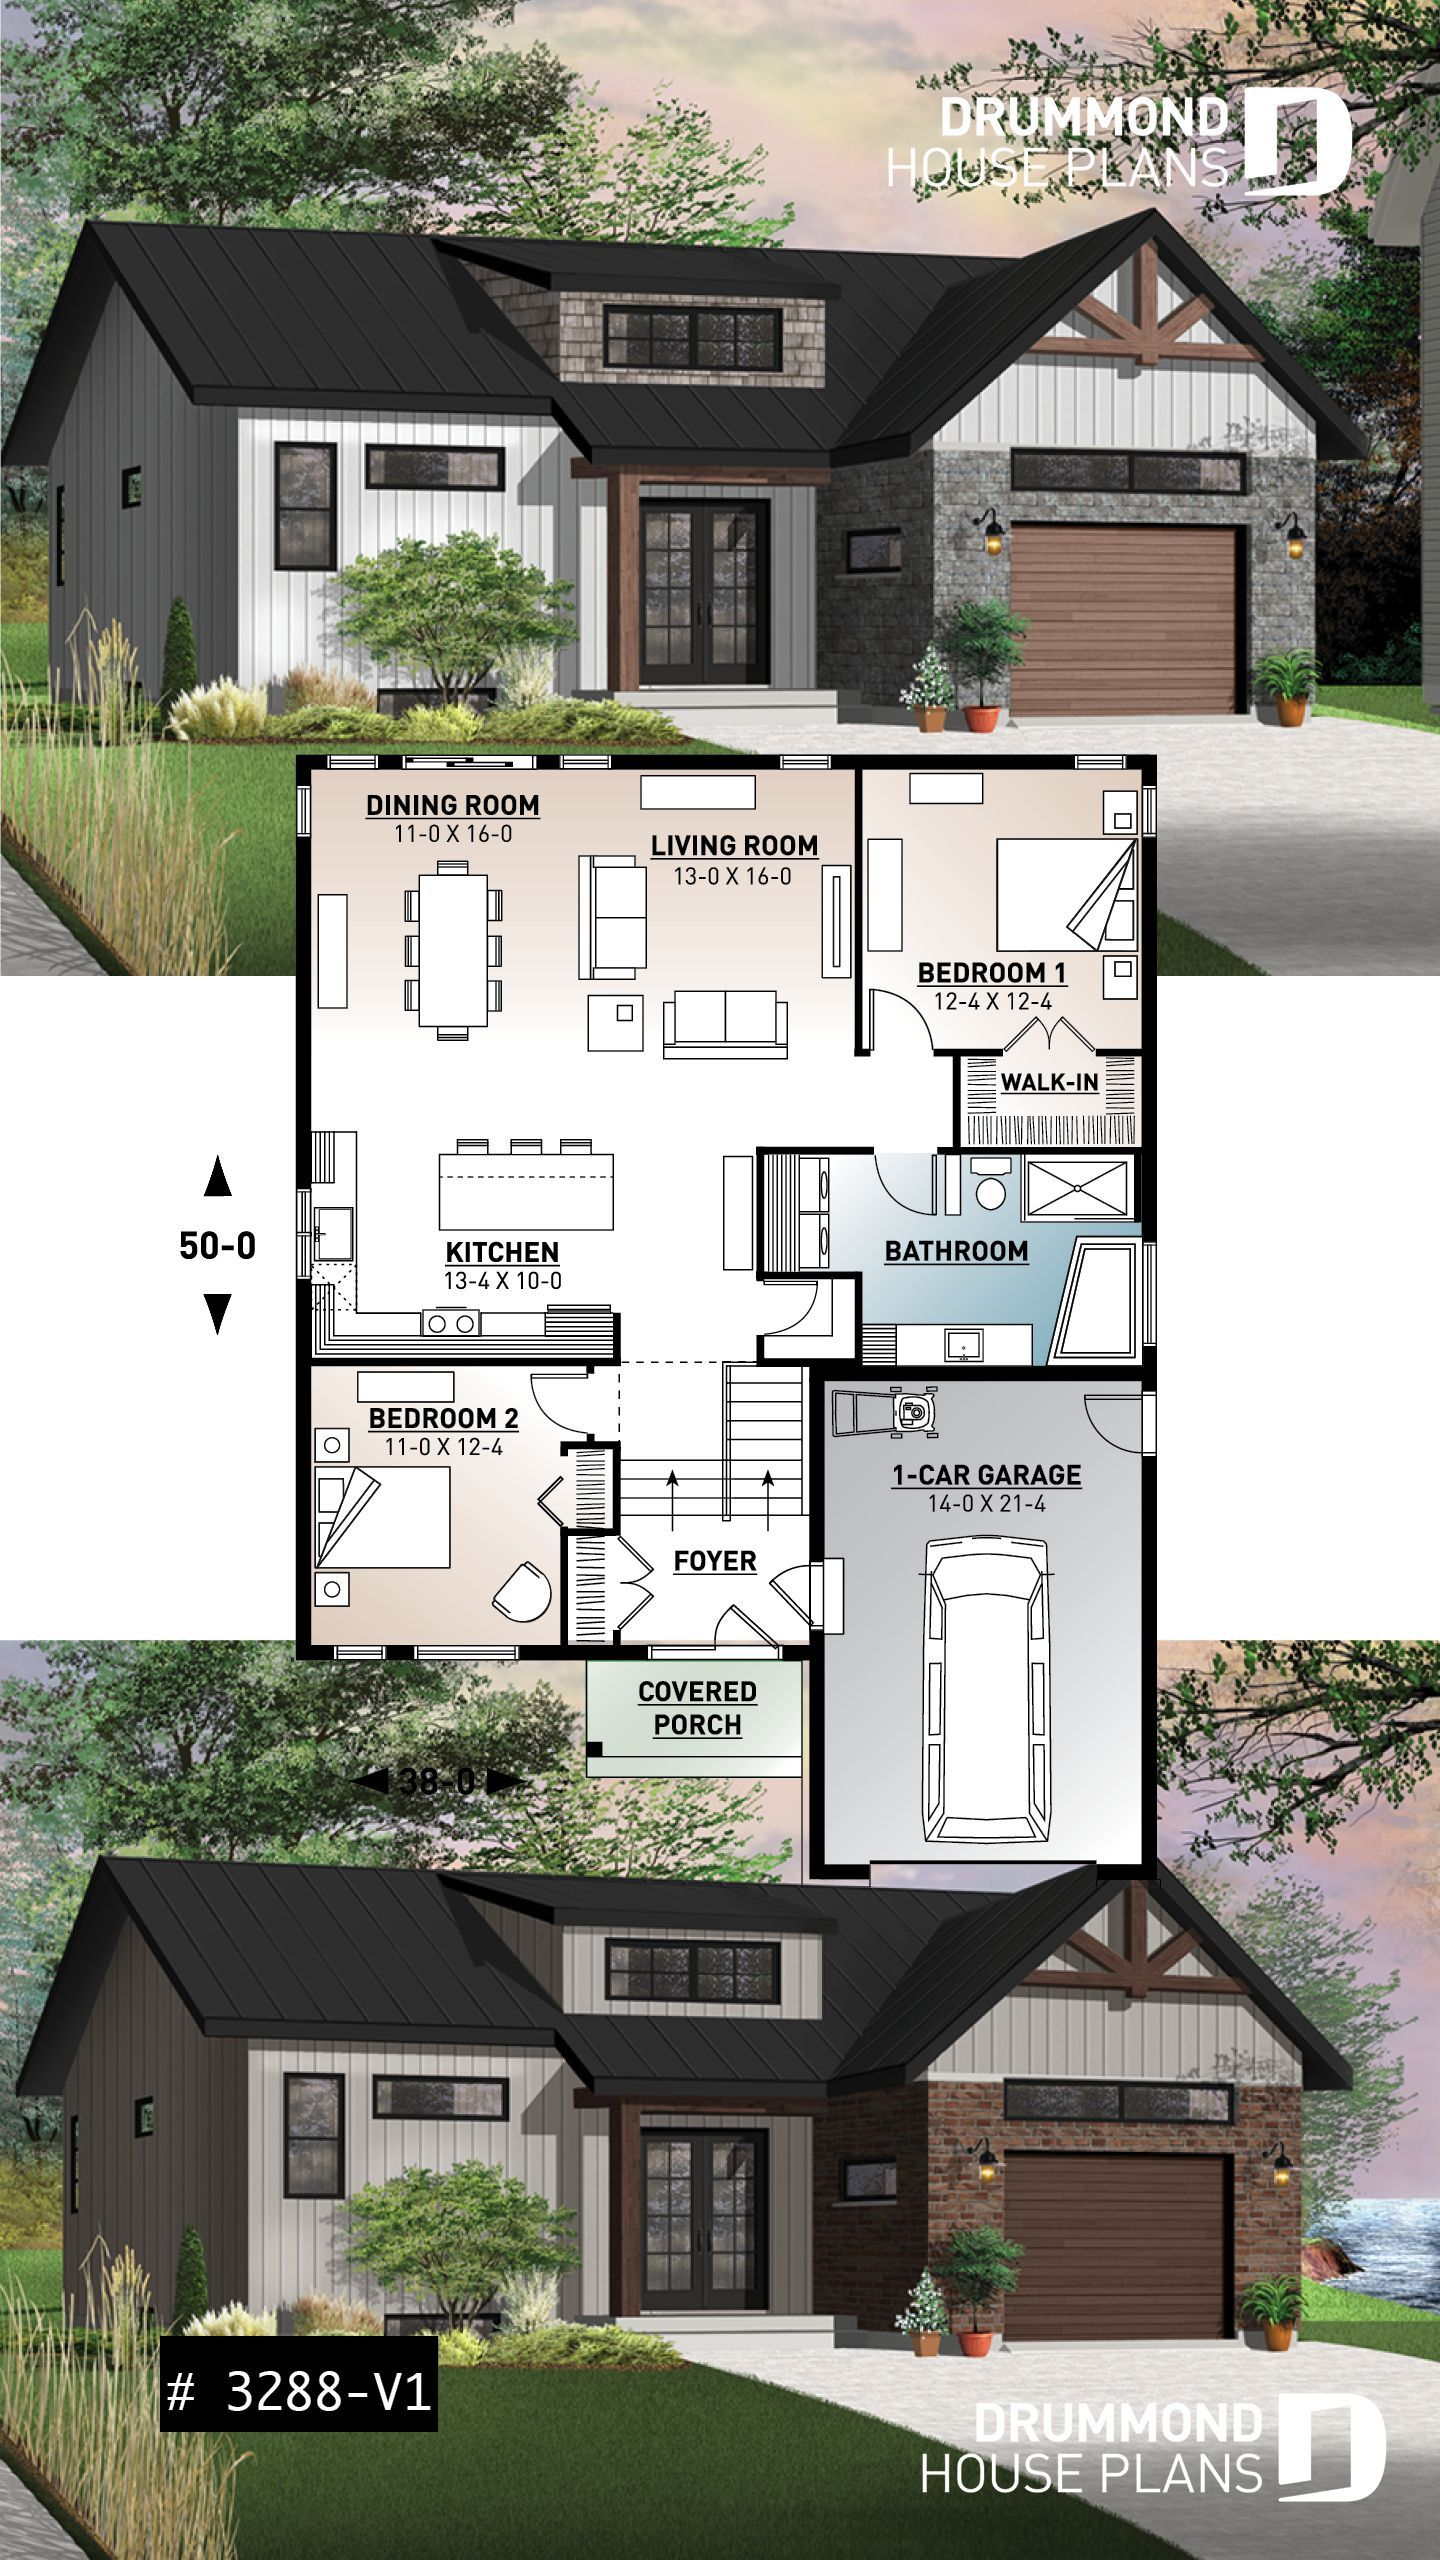 Farmhouse Bungalow House Plan With Open Concept Garageplans Scandinavian Inspired House Plan Open Floor Pla Bungalow House Plans House Plans House Blueprints